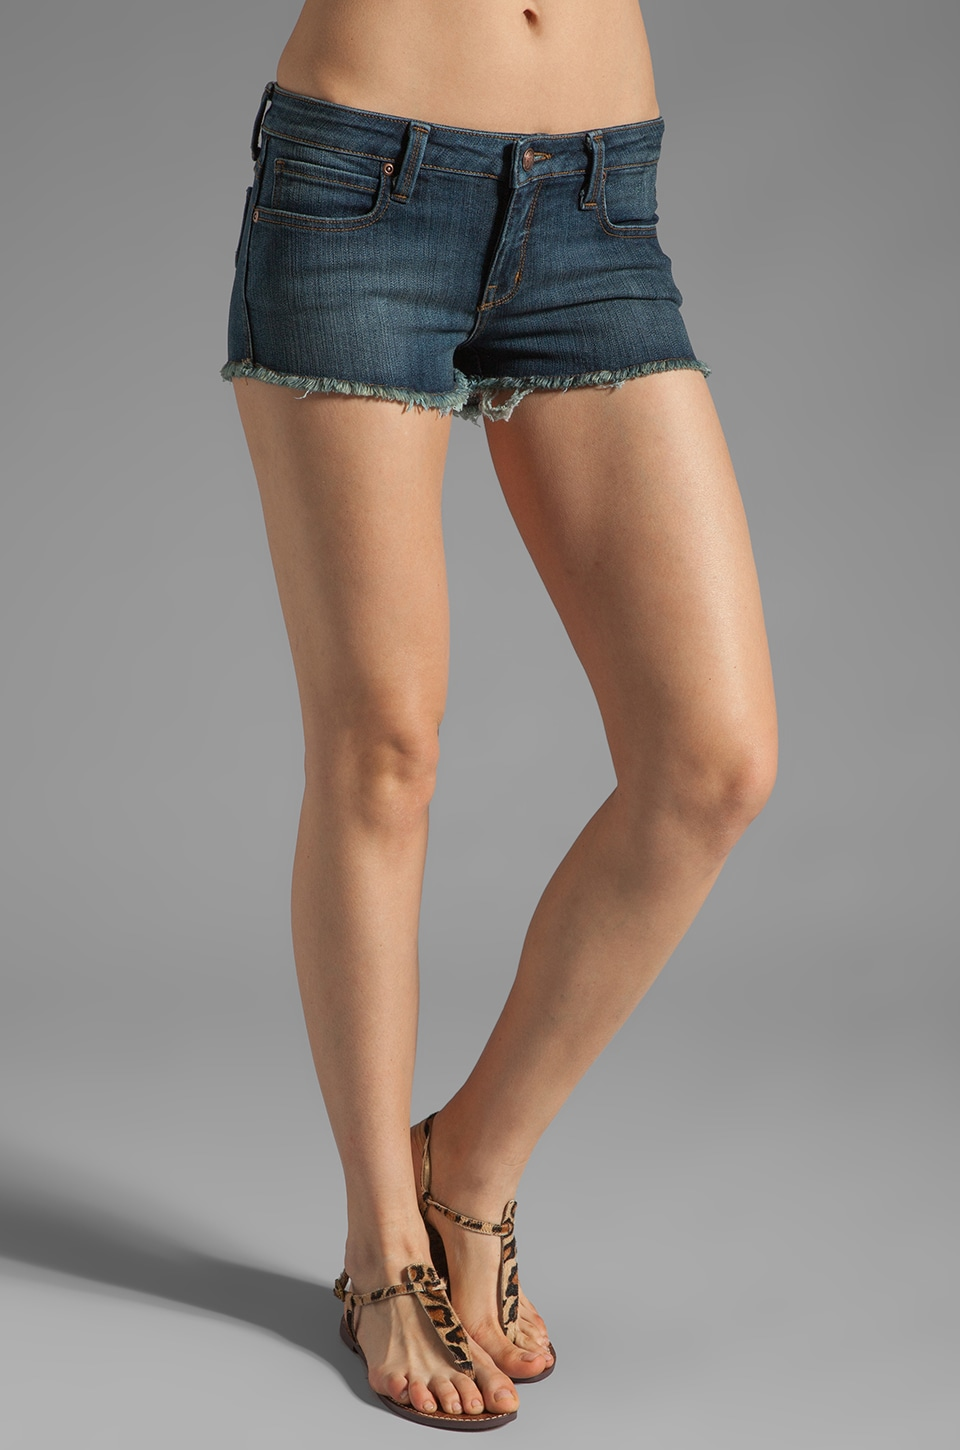 Frankie B. Jeans Sweet Bow Short in Frisco